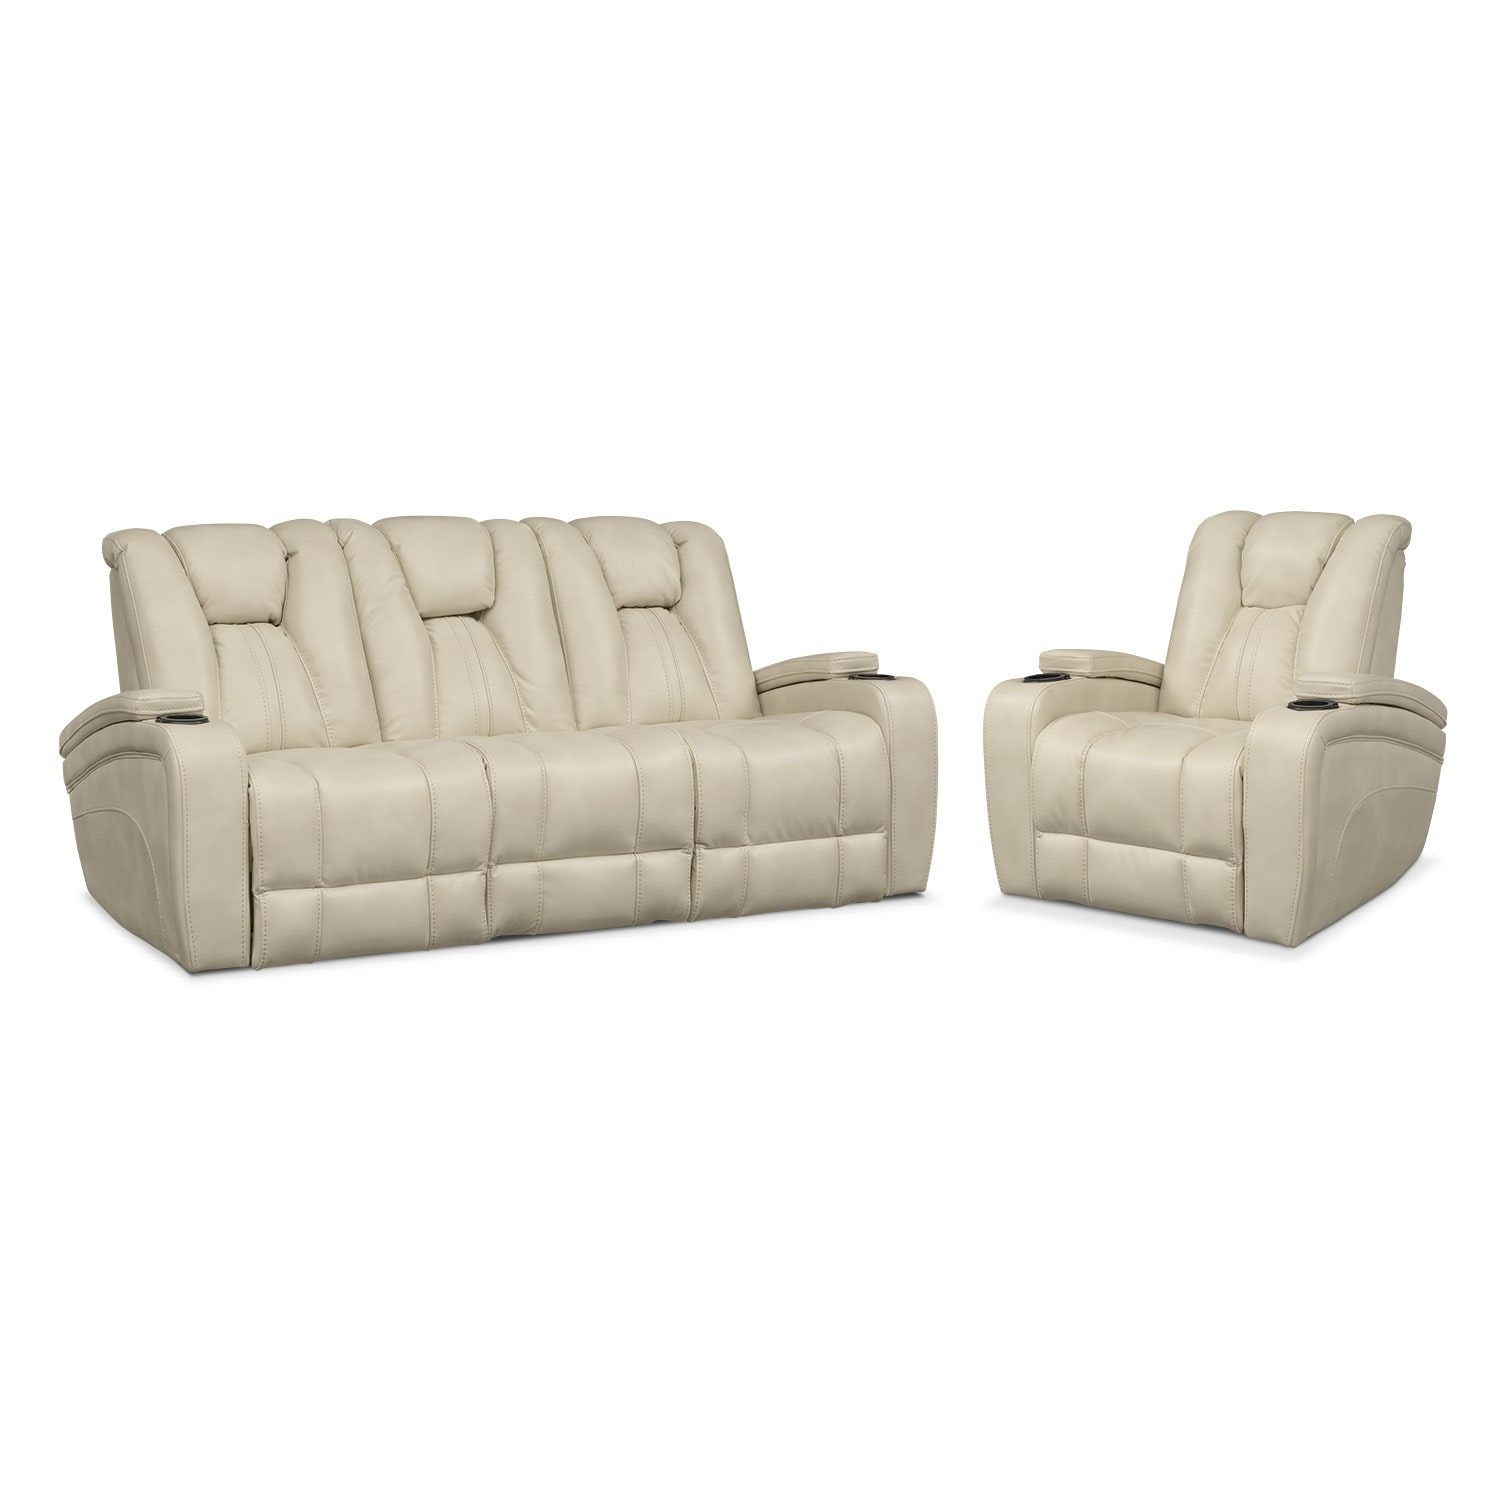 ... Dual Power Reclining Sofa and Power Recliner Set - Cream. Hover to zoom  sc 1 st  Value City Furniture & Pulsar Dual Power Reclining Sofa and Power Recliner Set - Cream ... islam-shia.org